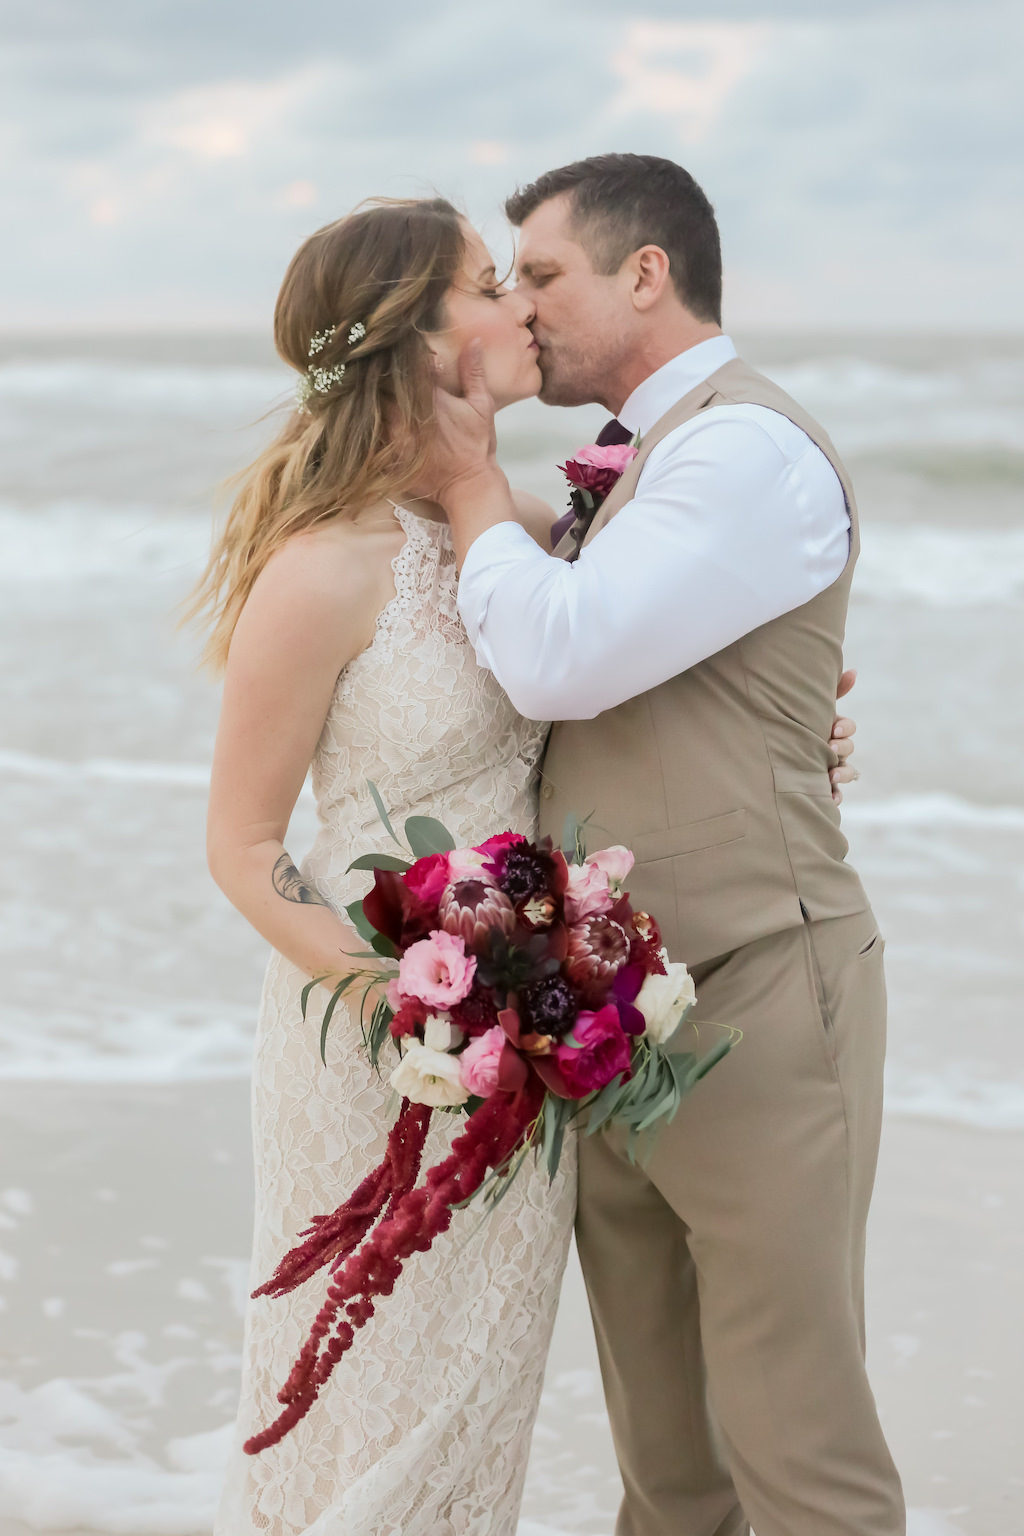 Florida Bride and Groom Sunset Wedding Portrait on the Beach, Bride in Long Fitted Lace Halter Strap BHLDN Wedding Dress with Jewel Tone, Purple, Pink, Plum, White and Greenery Organic Floral Bouquet, Groom in Khaki Suit and Vest | Tampa Bay Wedding Photographer Lifelong Photography Studios | Clearwater Beach Hotel WEdding Venue Hilton Clearwater Beach | Hair and Makeup Artist Femme Akoi